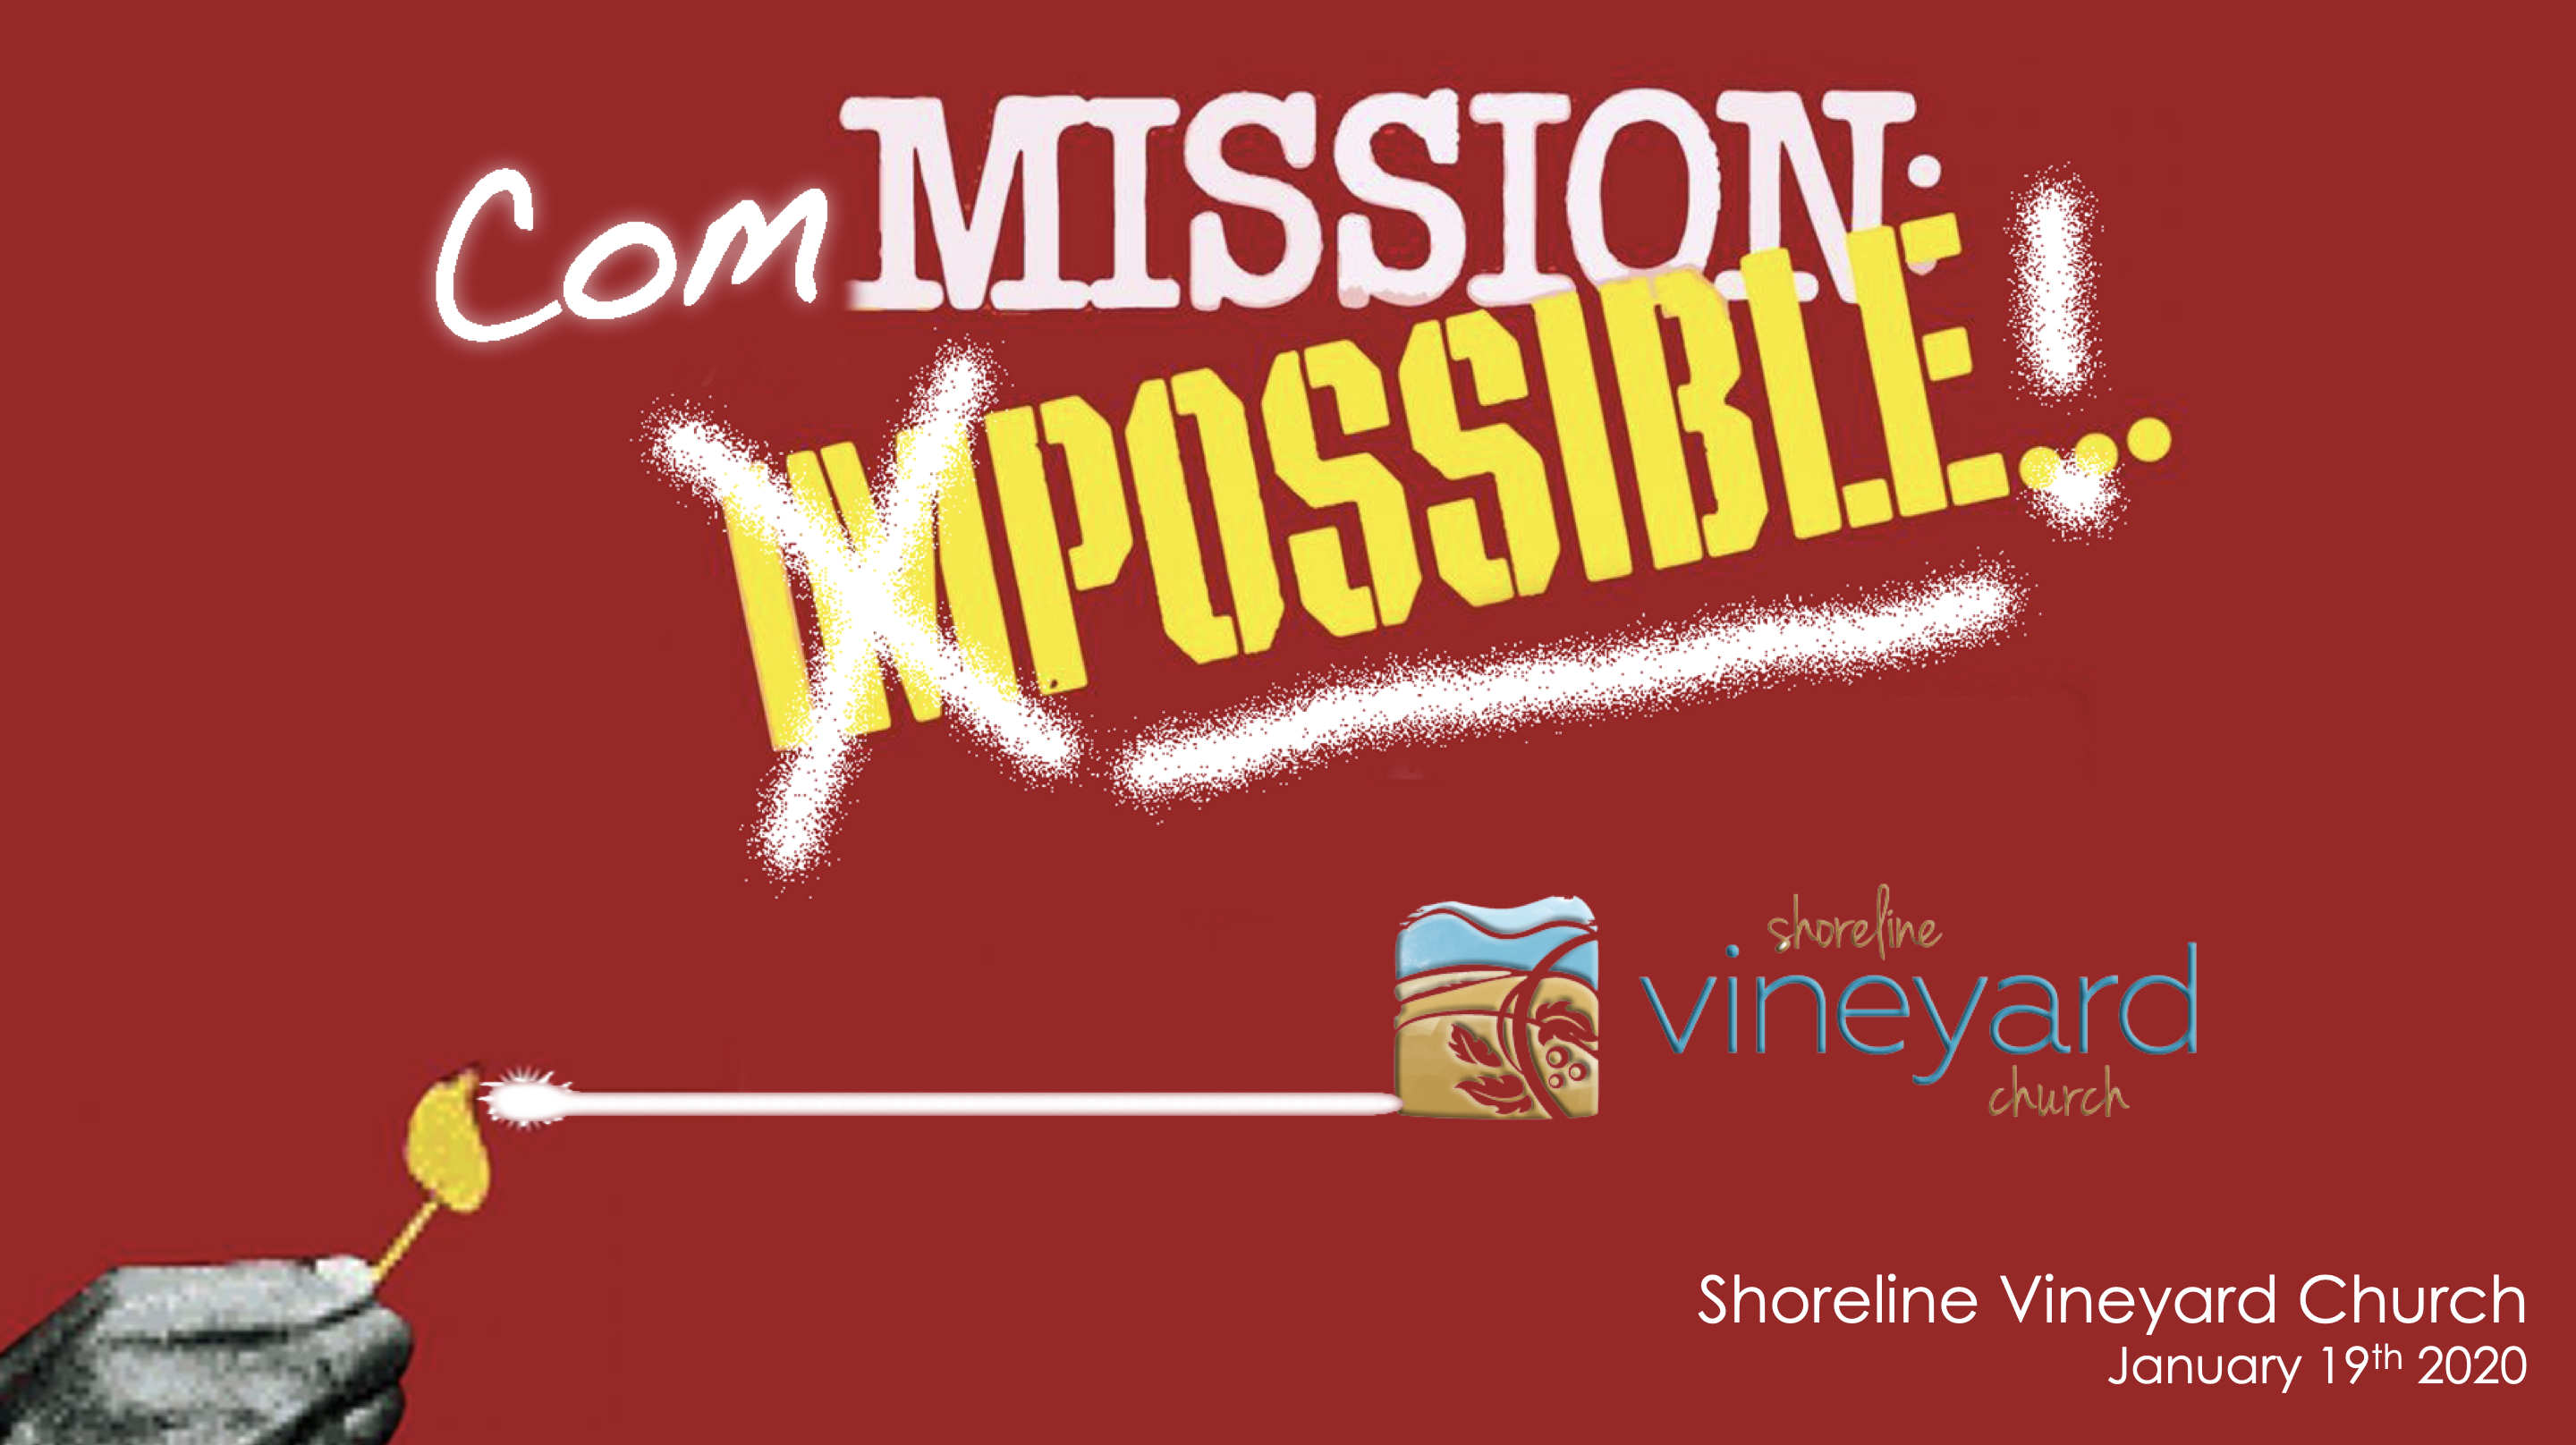 Commission Possible! – Why Church?